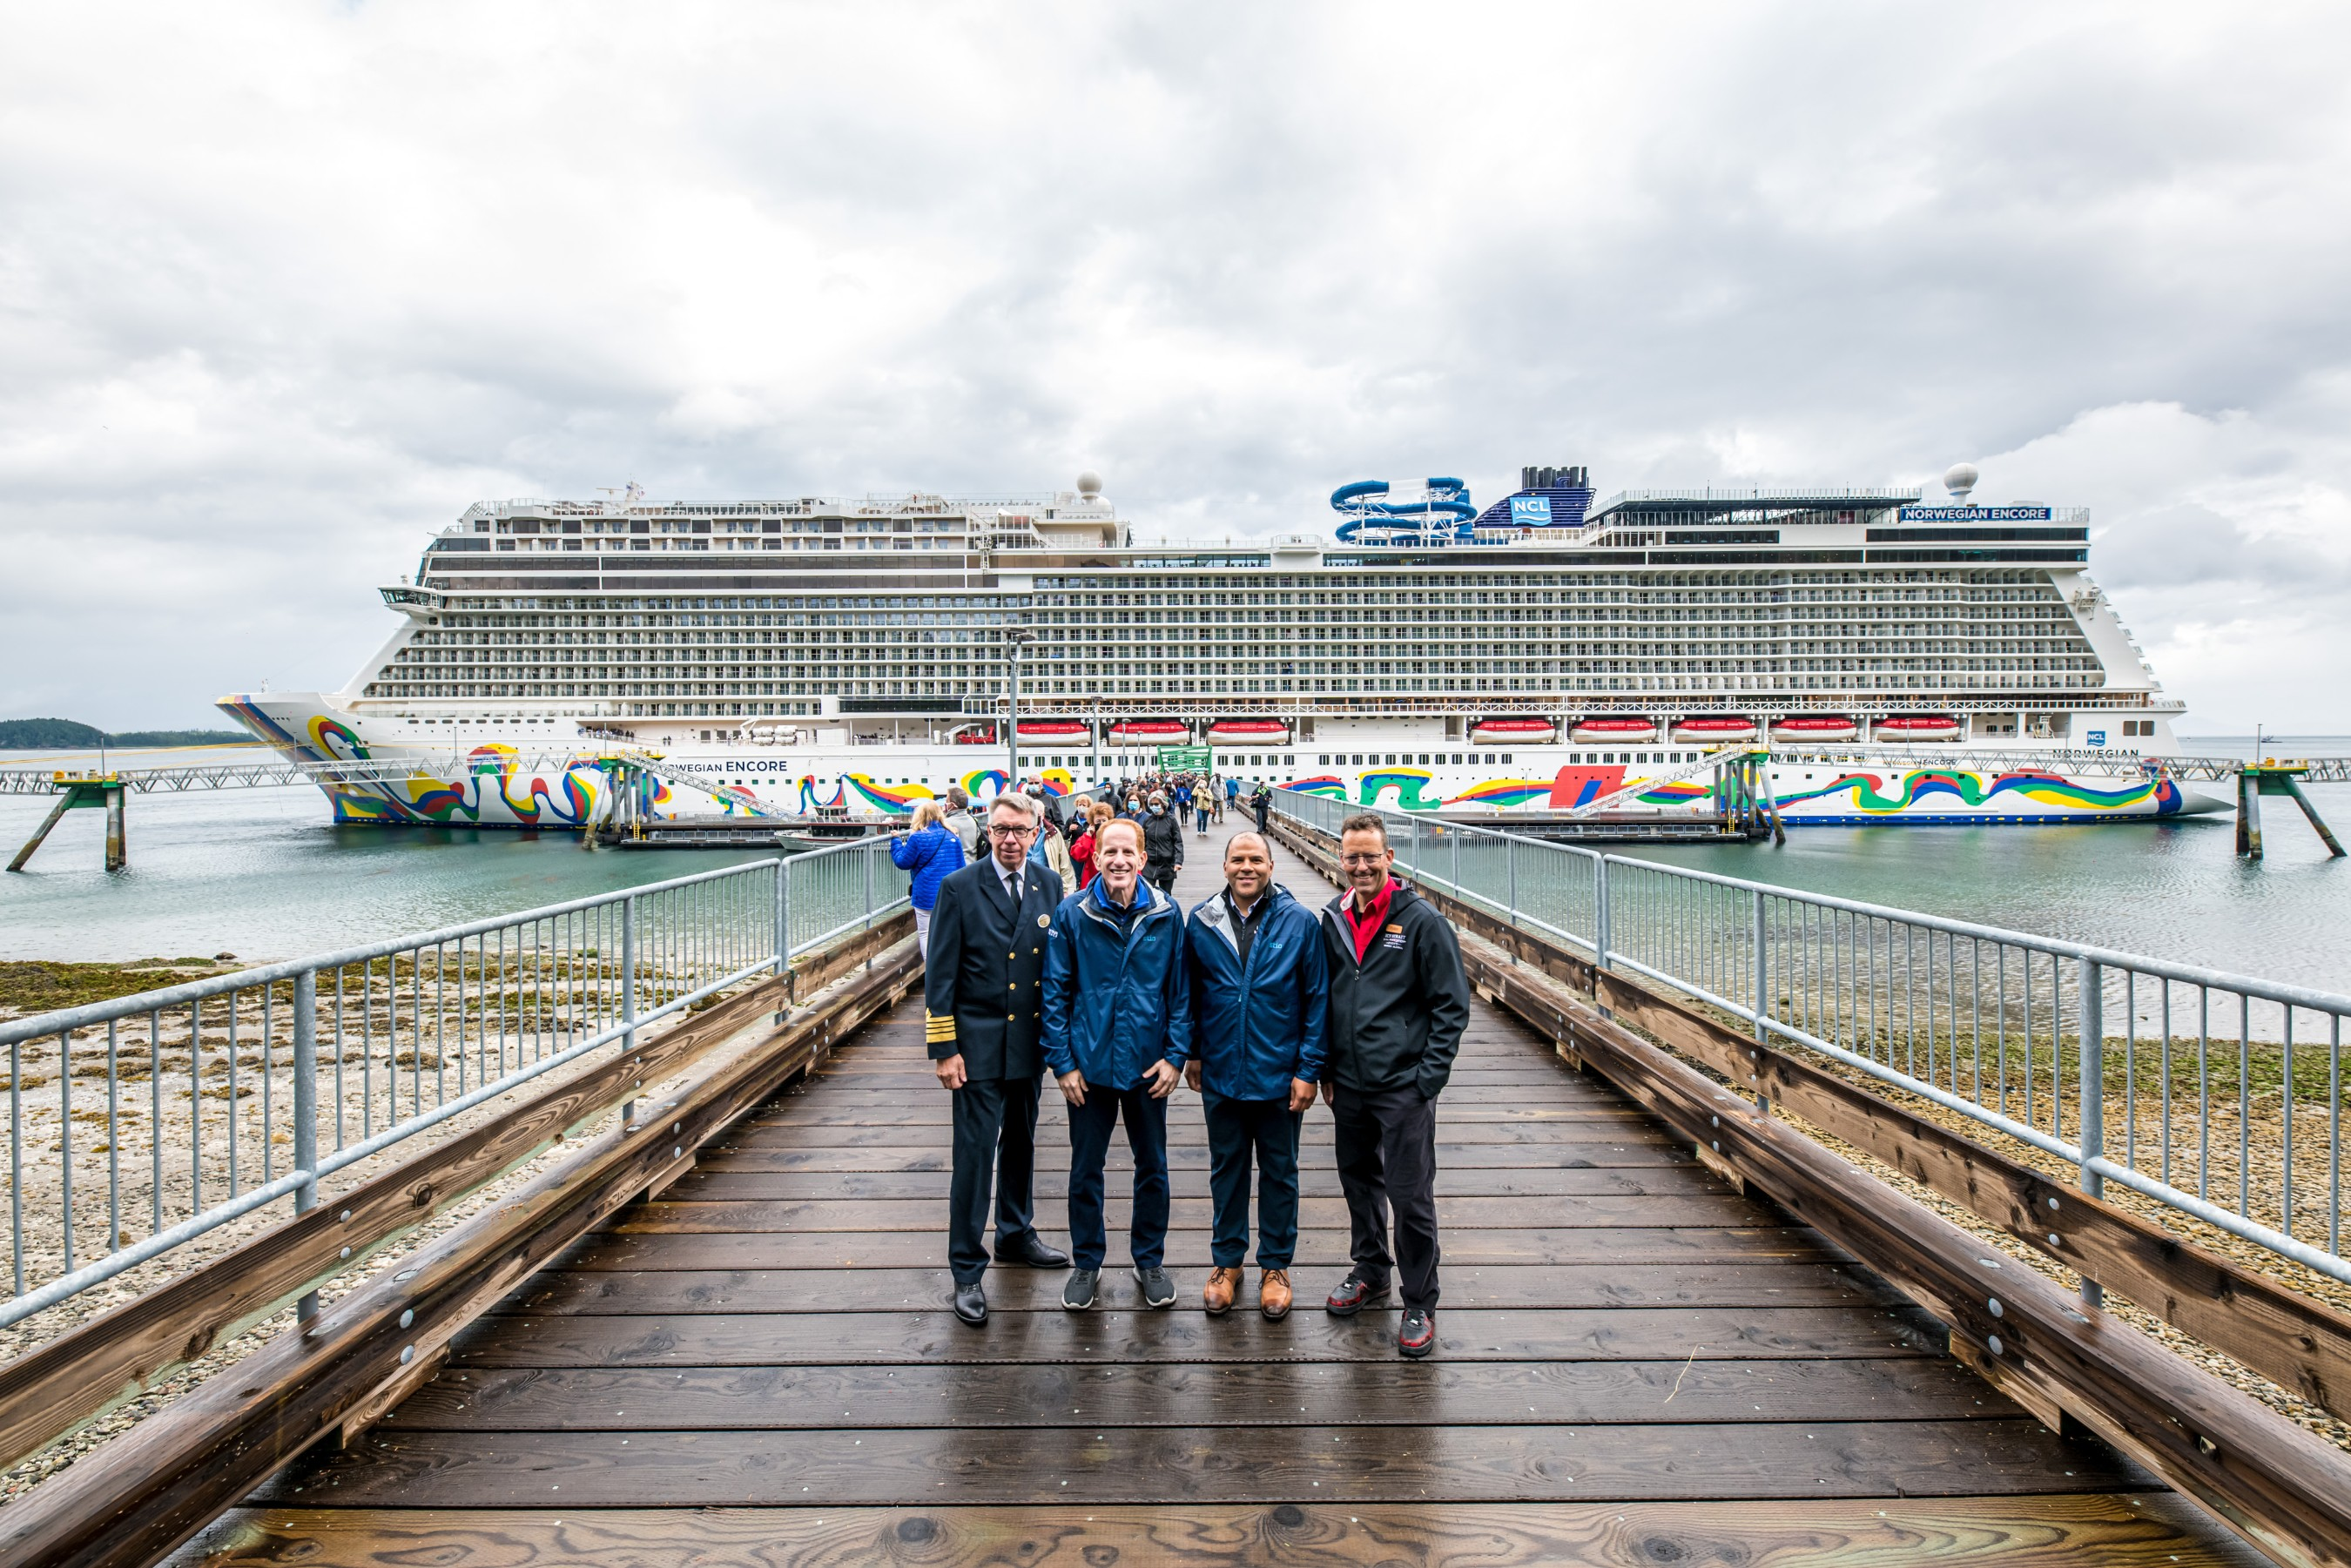 Norwegian Cruise Line makes its Great Cruise Comeback from the U.S. with Norwegian Encore's debut voyage to Alaska, where Icy Strait Point was the first port of call. Pictured here on the new Wilderness Landing pier, which was built in partnership between Norwegian Cruise Line Holdings Ltd. and Huna Totem Corporation, are Norwegian Encore Captain Martin Holmqvist, NCL President and CEO Harry Sommer, Huna Totem Corporation CEO Russell Dick and Tyler Hickman, Vice President of Huna Totem Corporation. Photos by Alive Coverage.